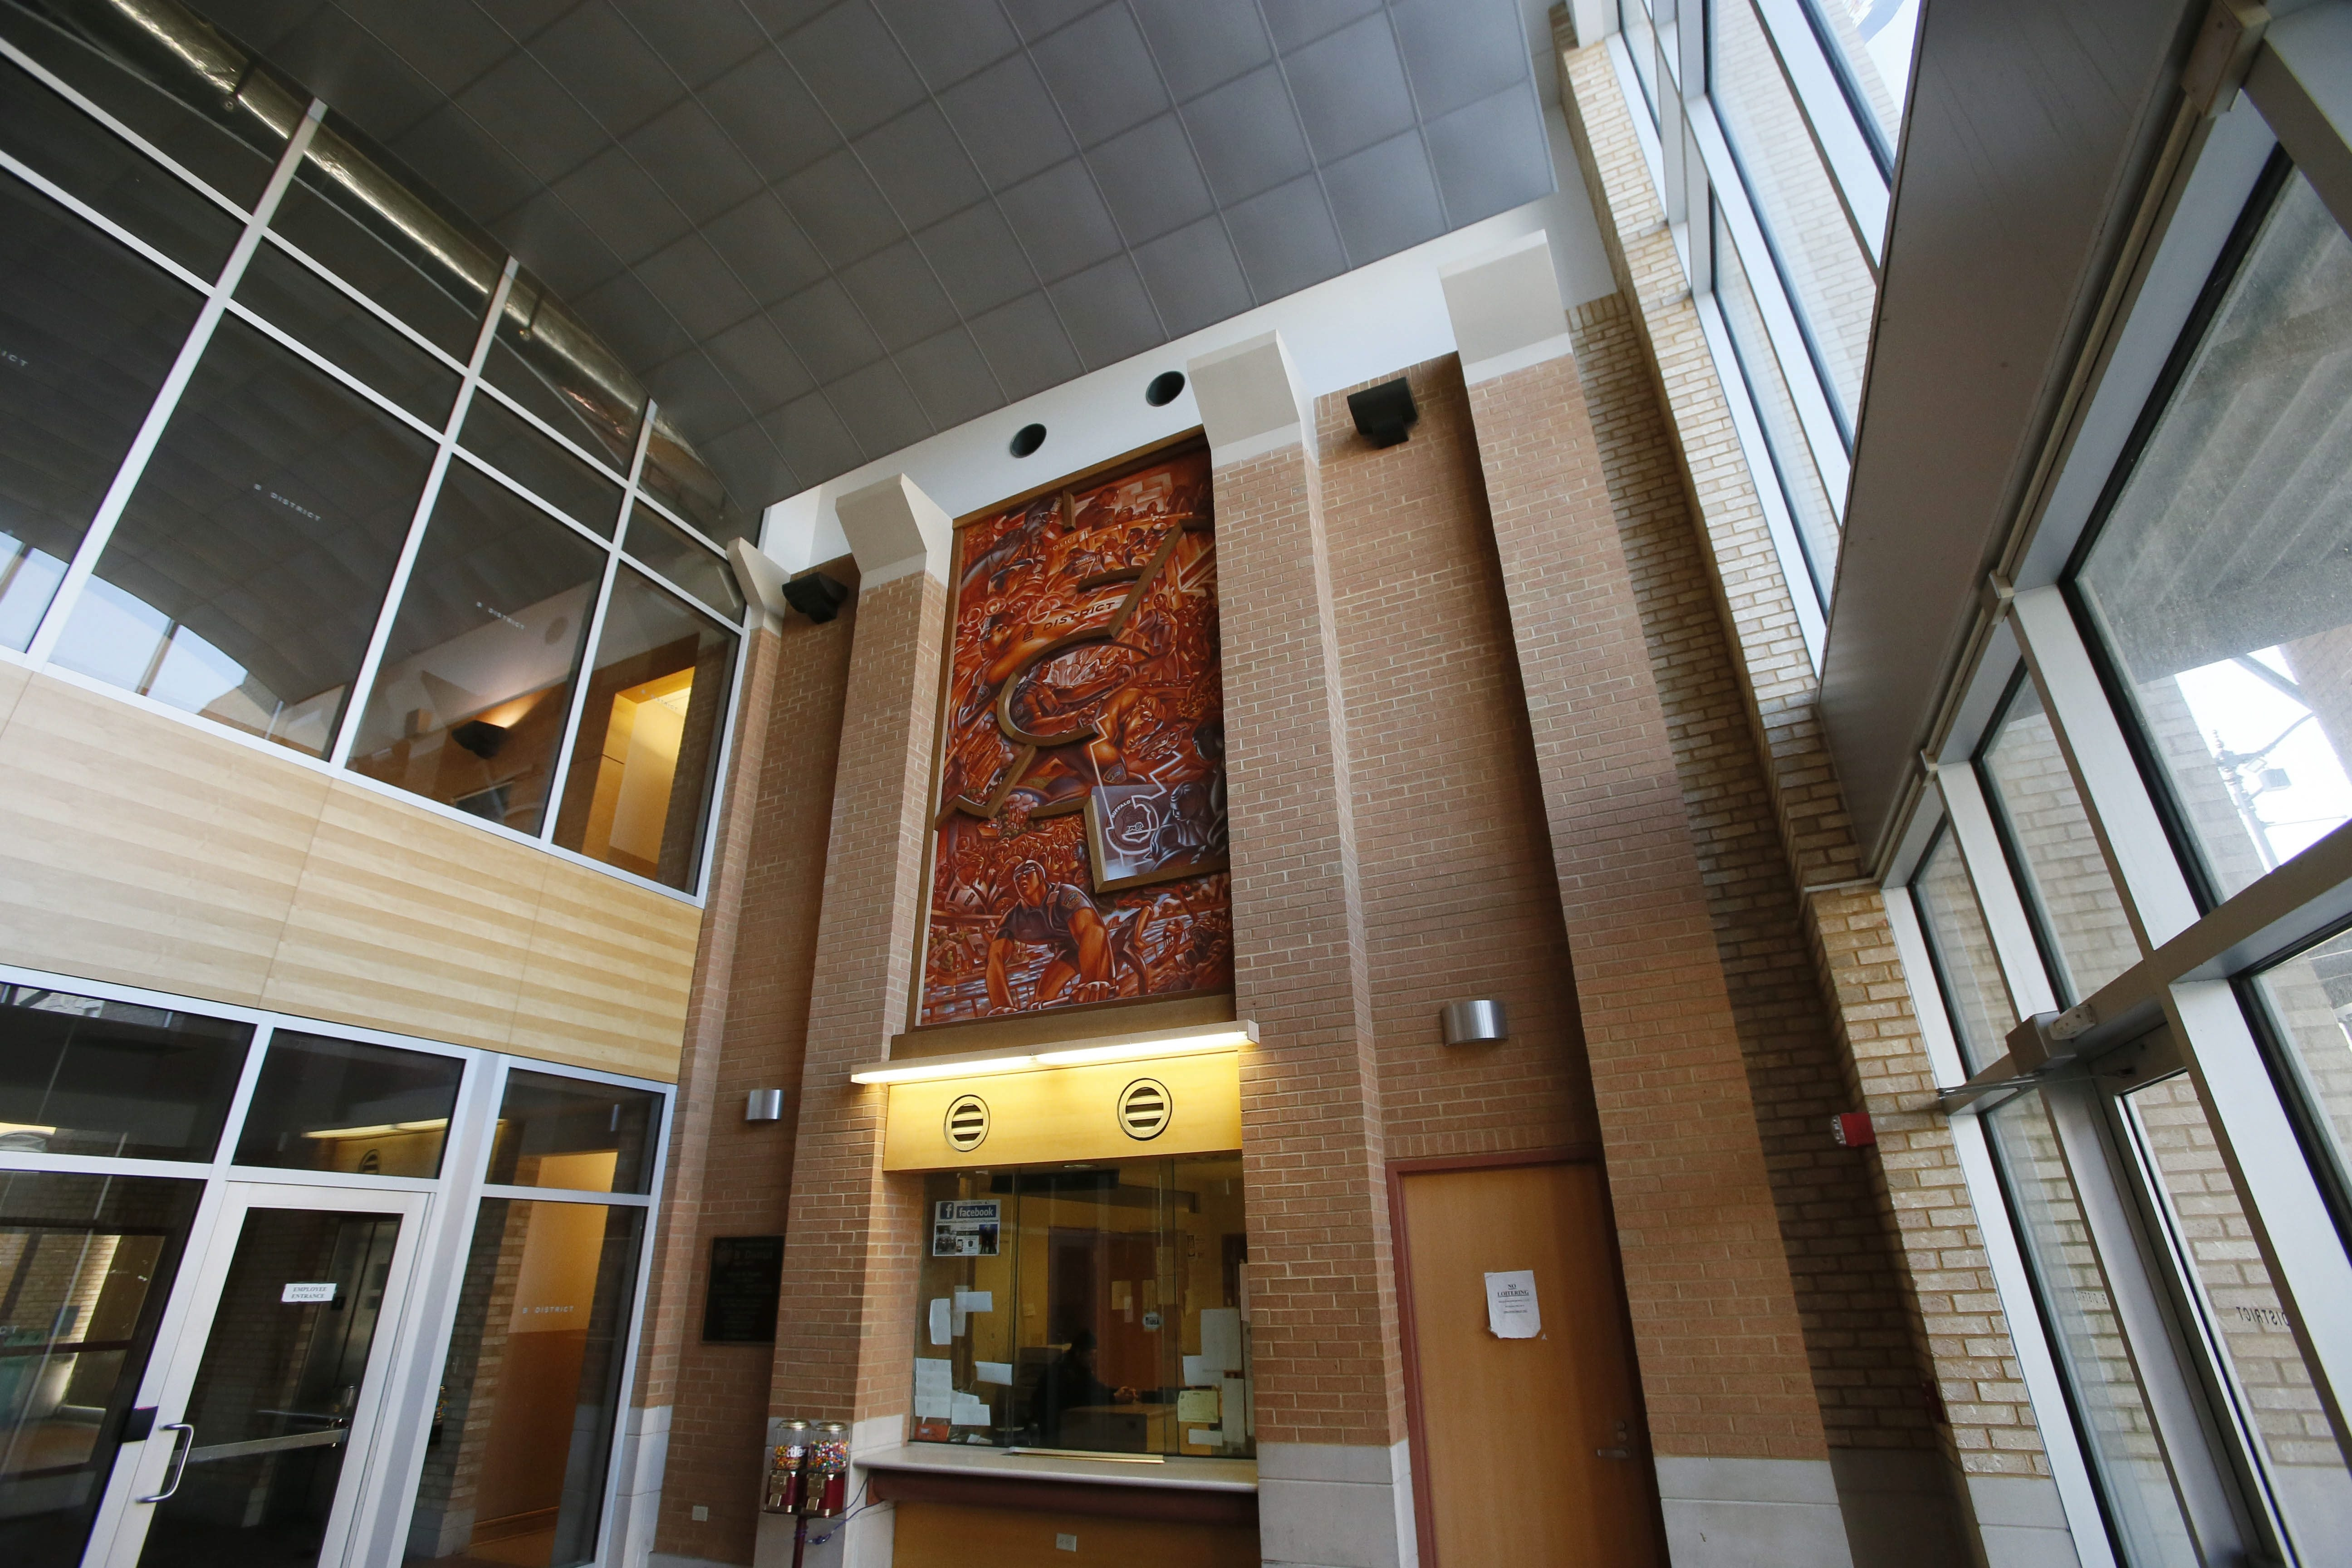 An artist's mural rises toward the ceiling in the lobby of the B District station in downtown Buffalo.